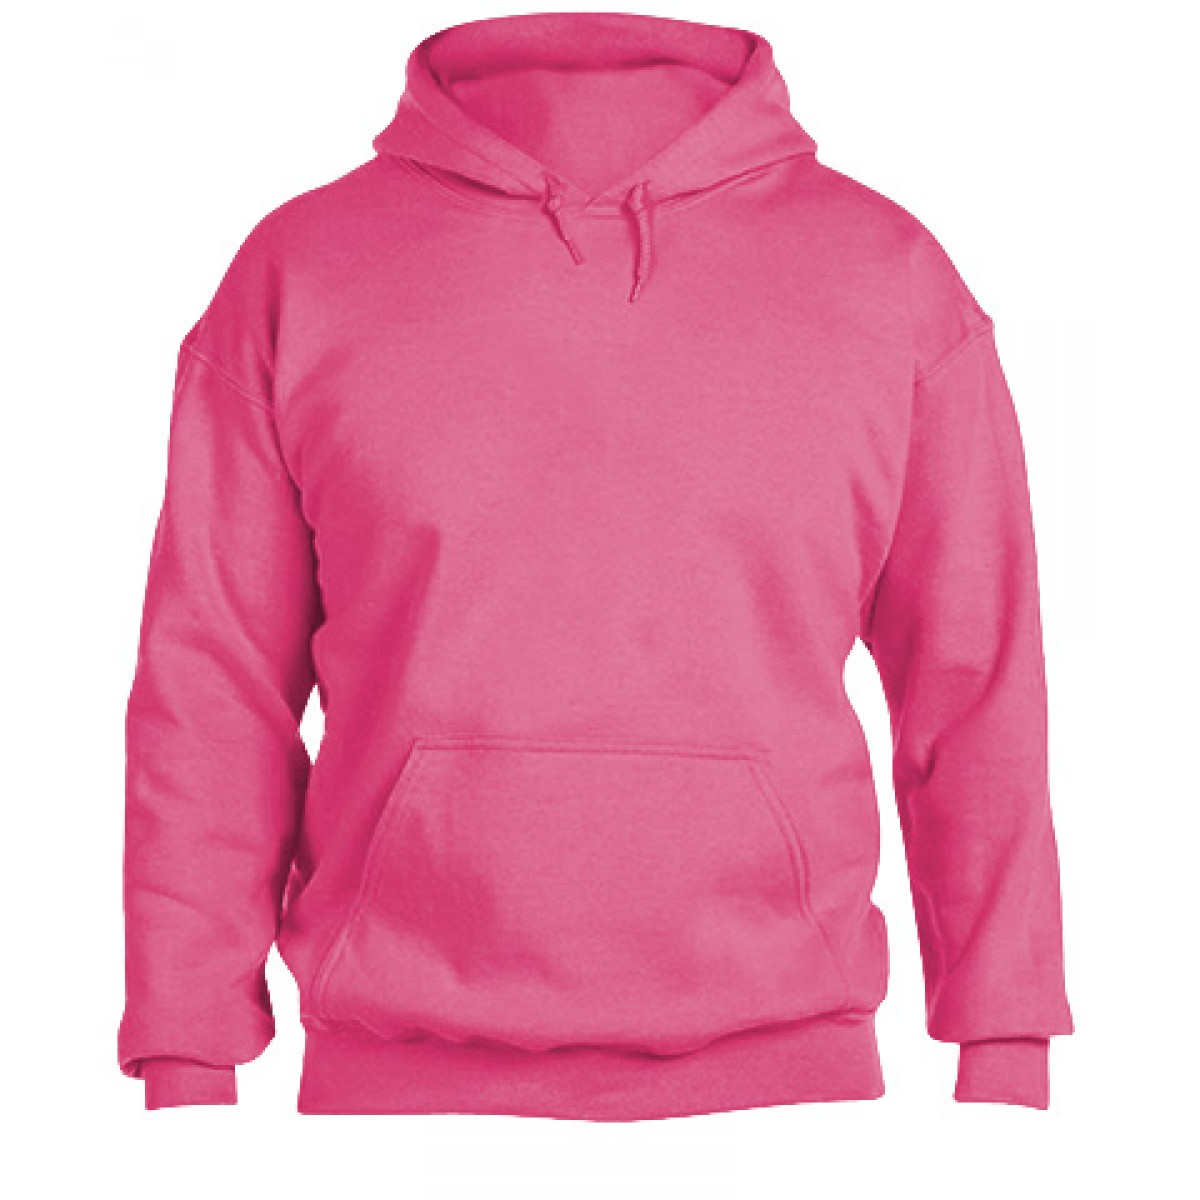 Hooded Sweatshirt 50/50 Heavy Safety Pink-Safety Pink-M